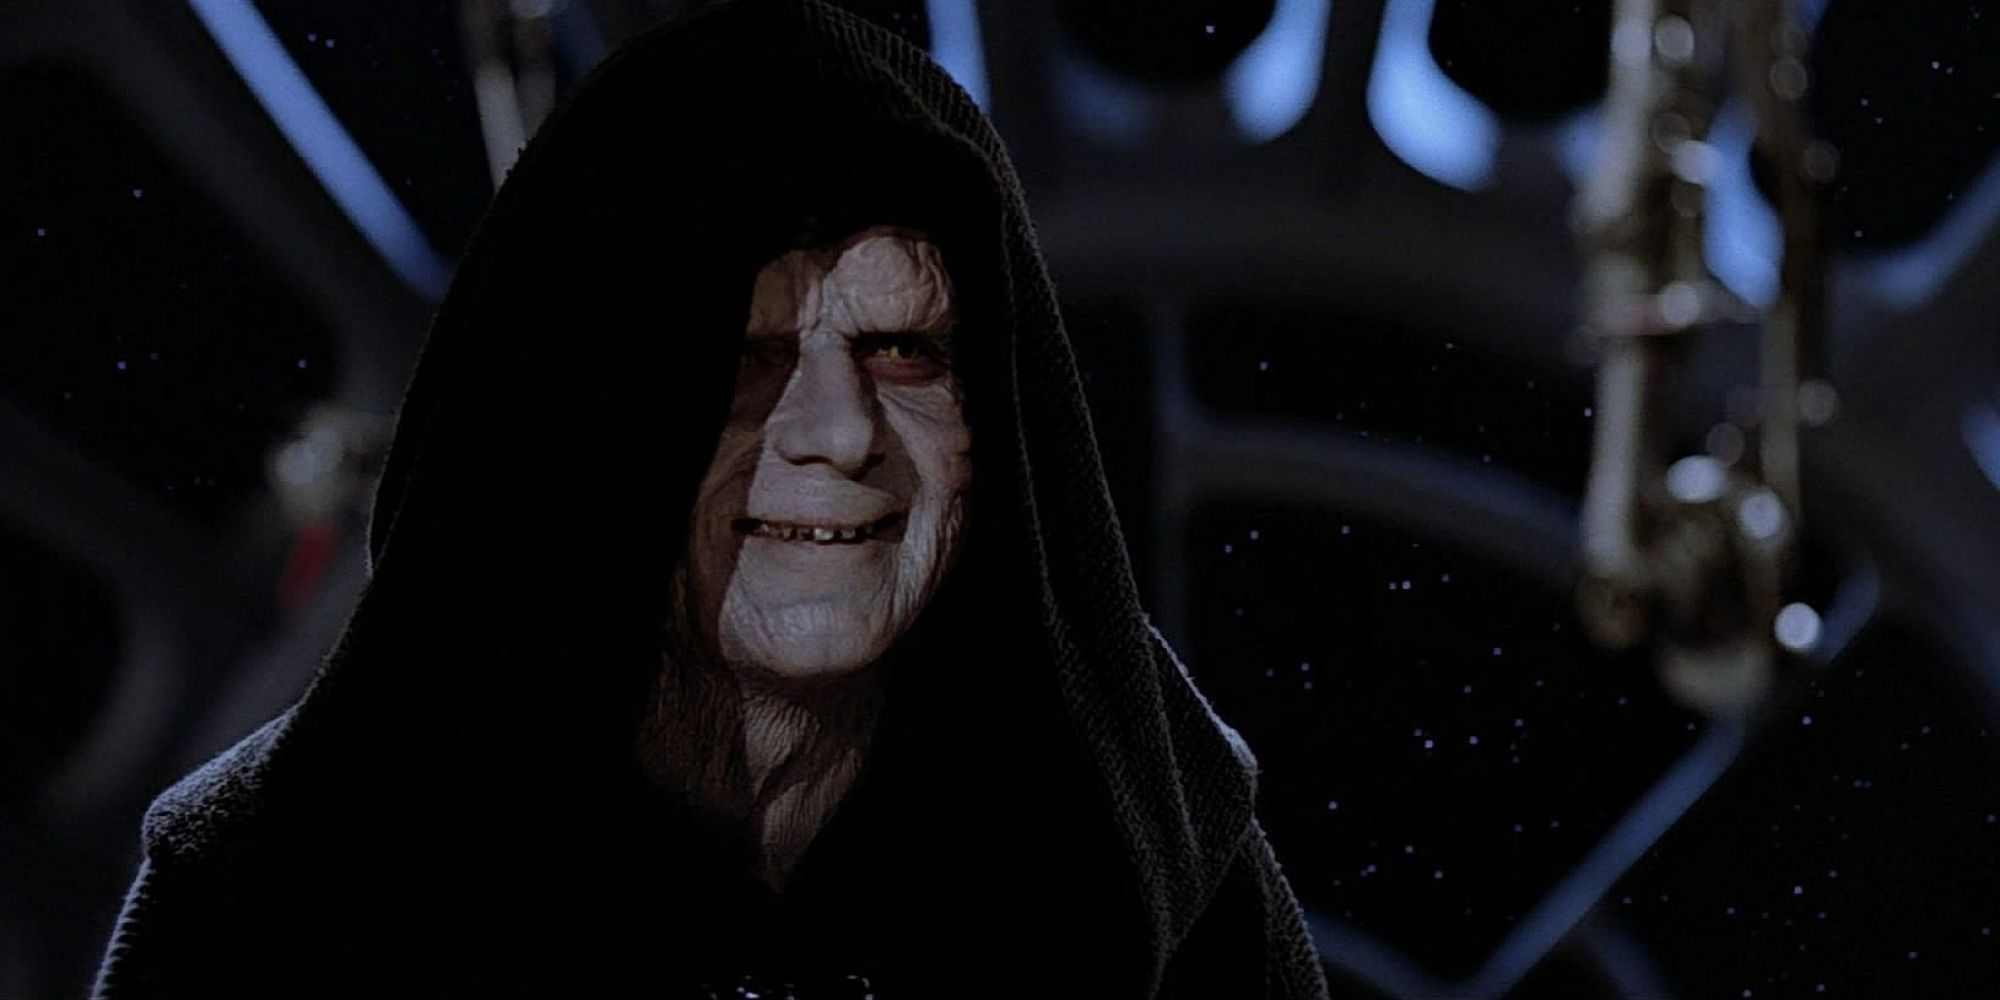 Ian McDiarmid Hopes No Other Actor Is Cast As Emperor Palpatine In Future Films